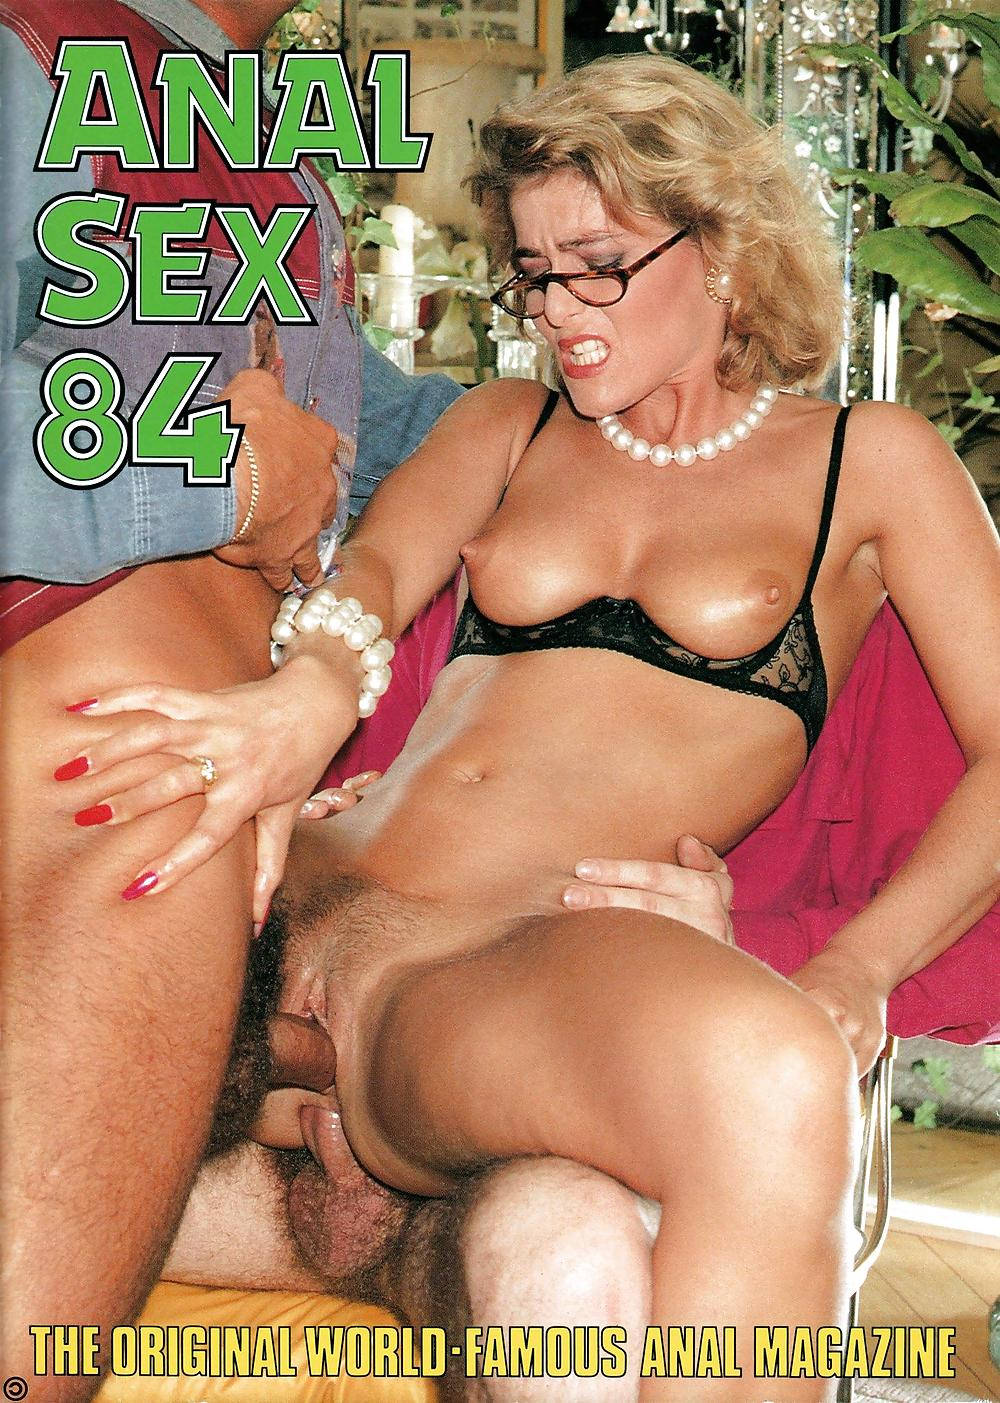 anal porn mag Anal Sex No. 84 - Porn Mag - 83 Pics | xHamster